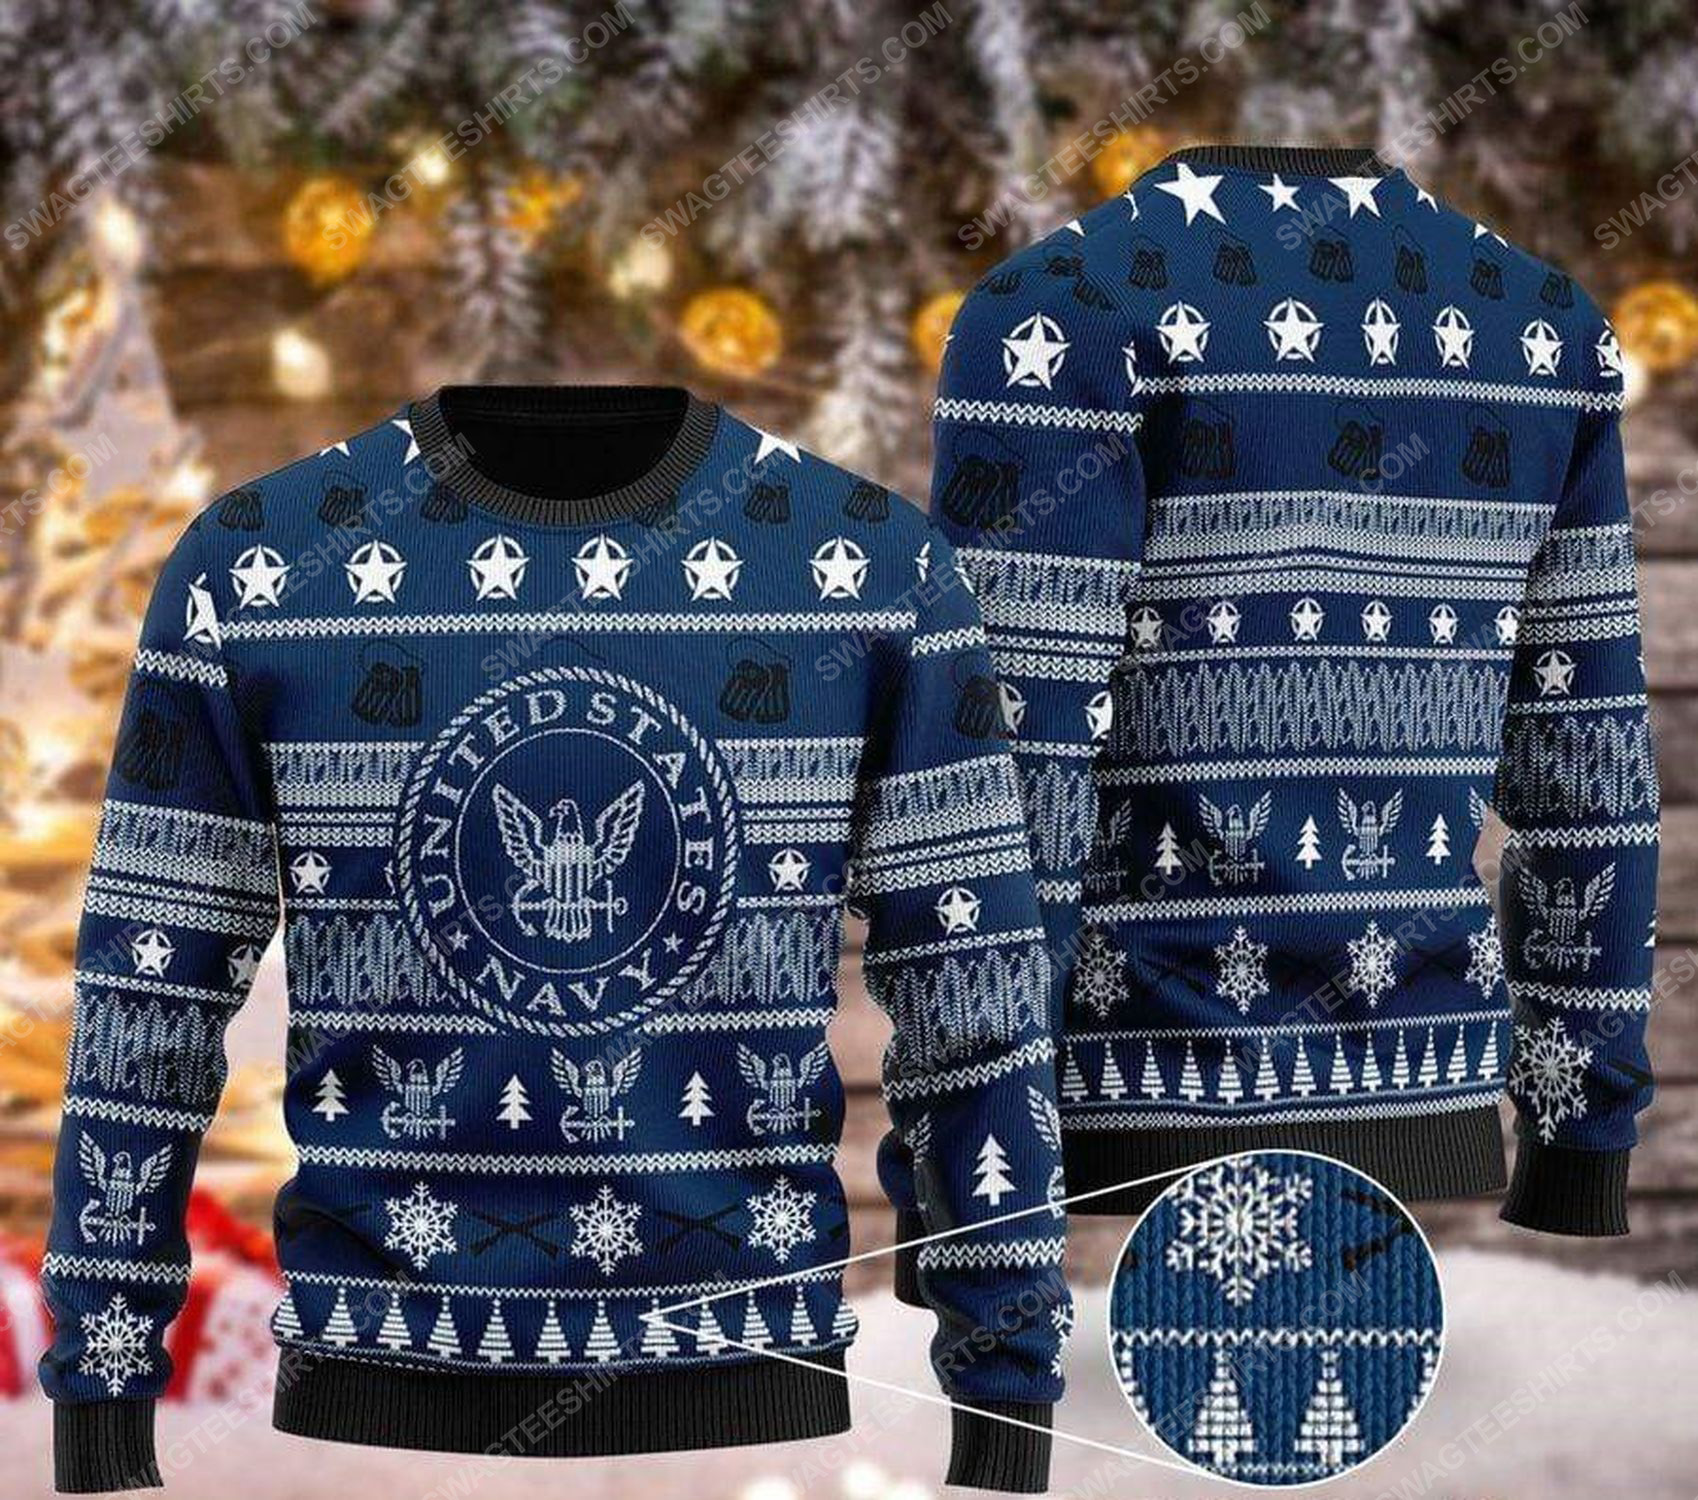 United states navy pattern ugly christmas sweater 1